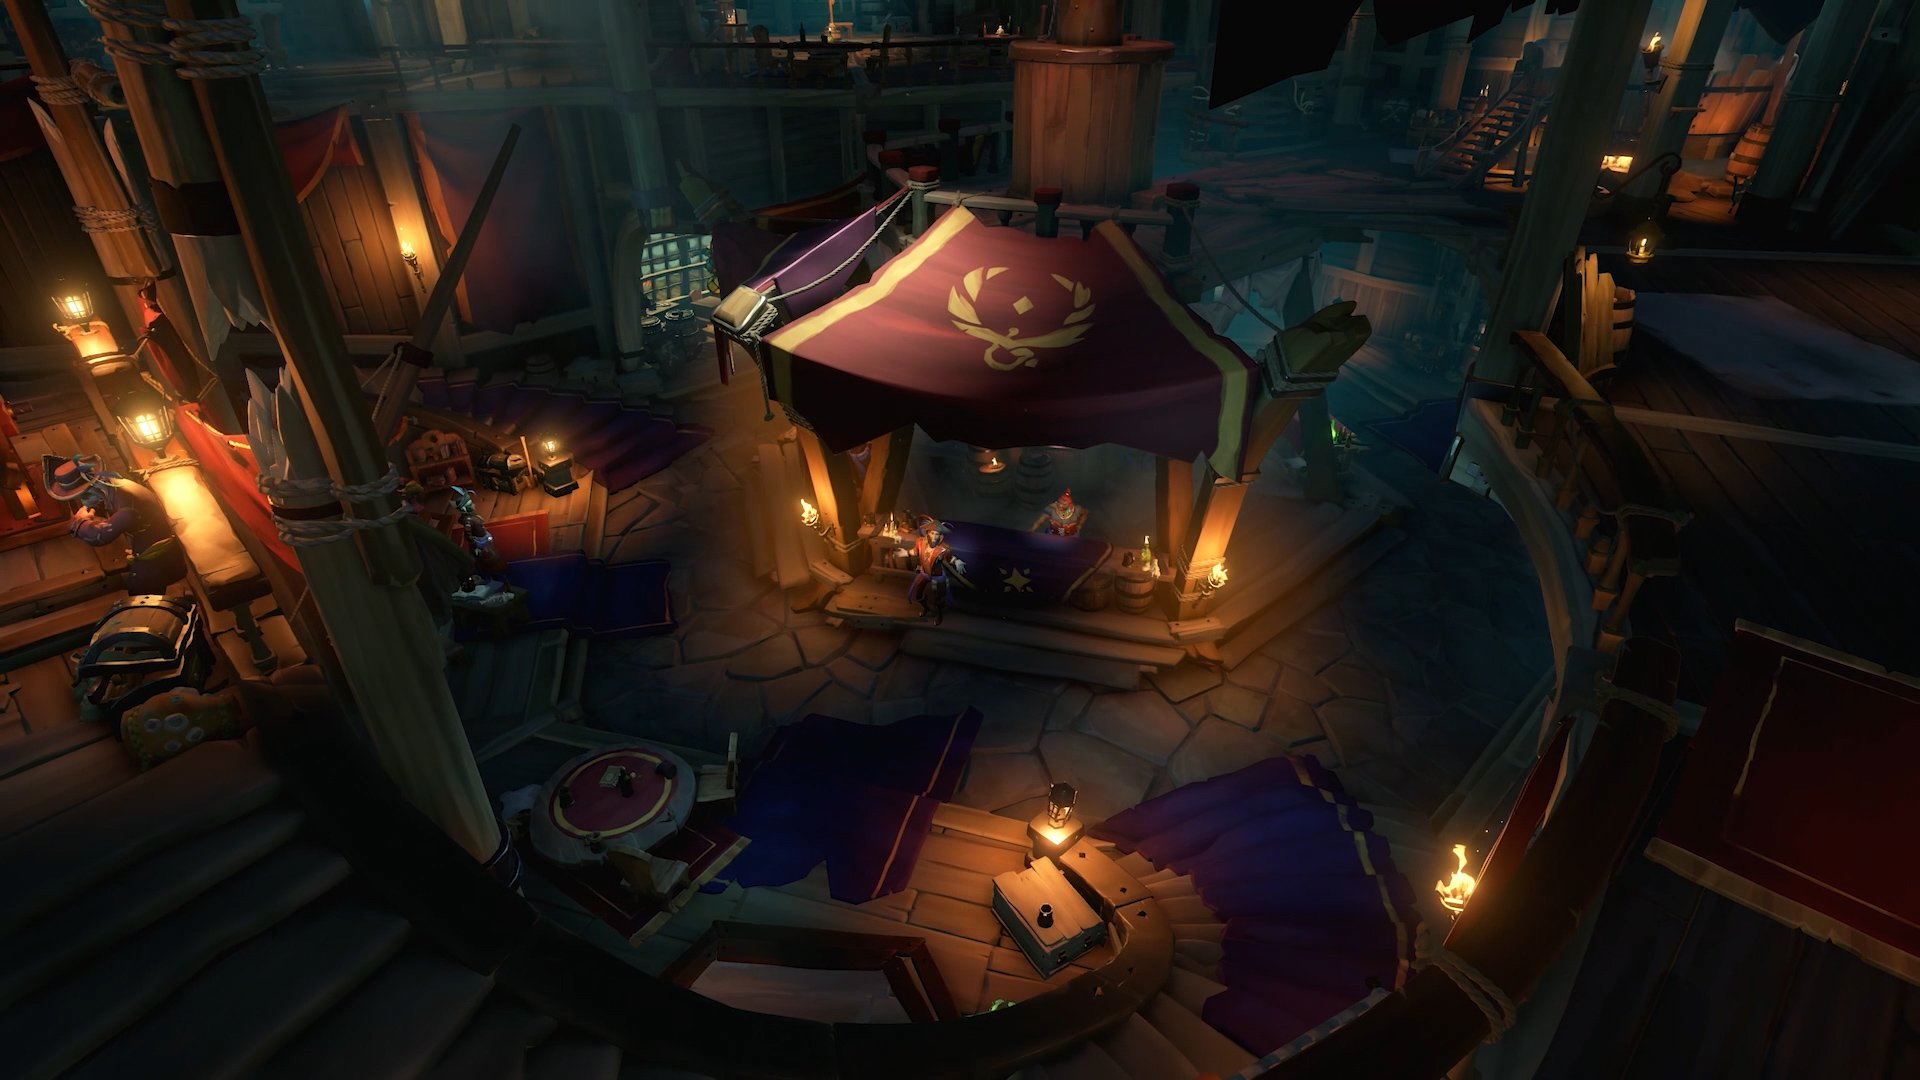 Sea of Thieves The Arena the tavern